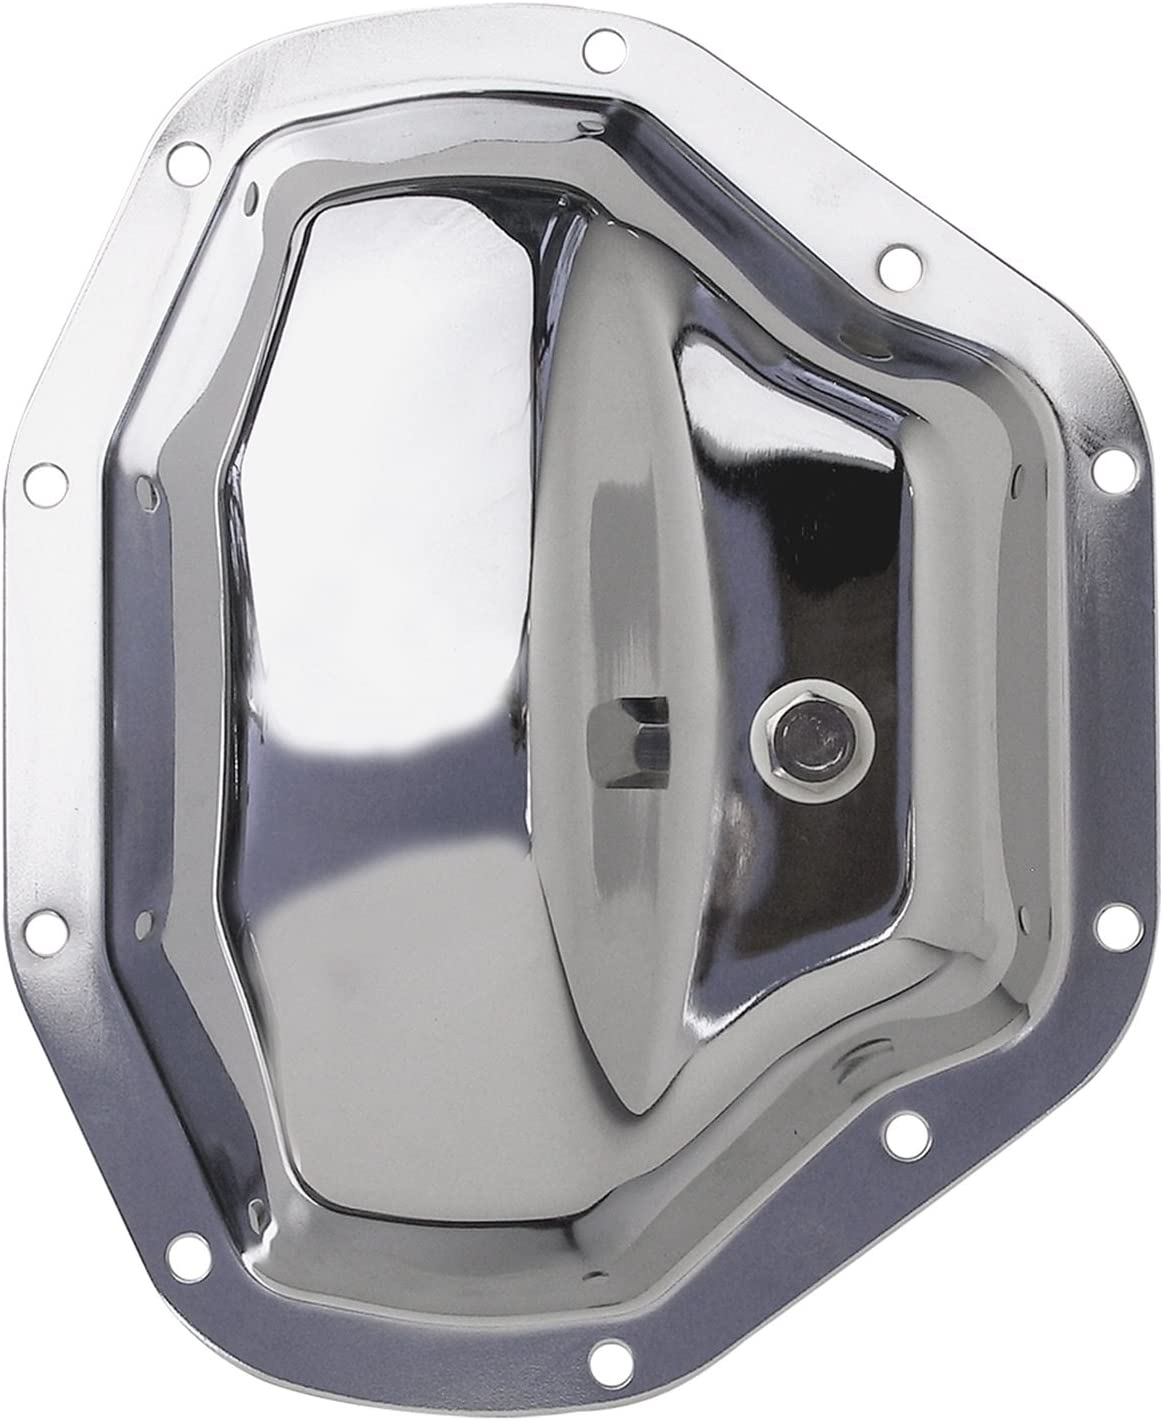 Trans-Dapt Opening large release sale 4808 Chrome Luxury Cover Differential